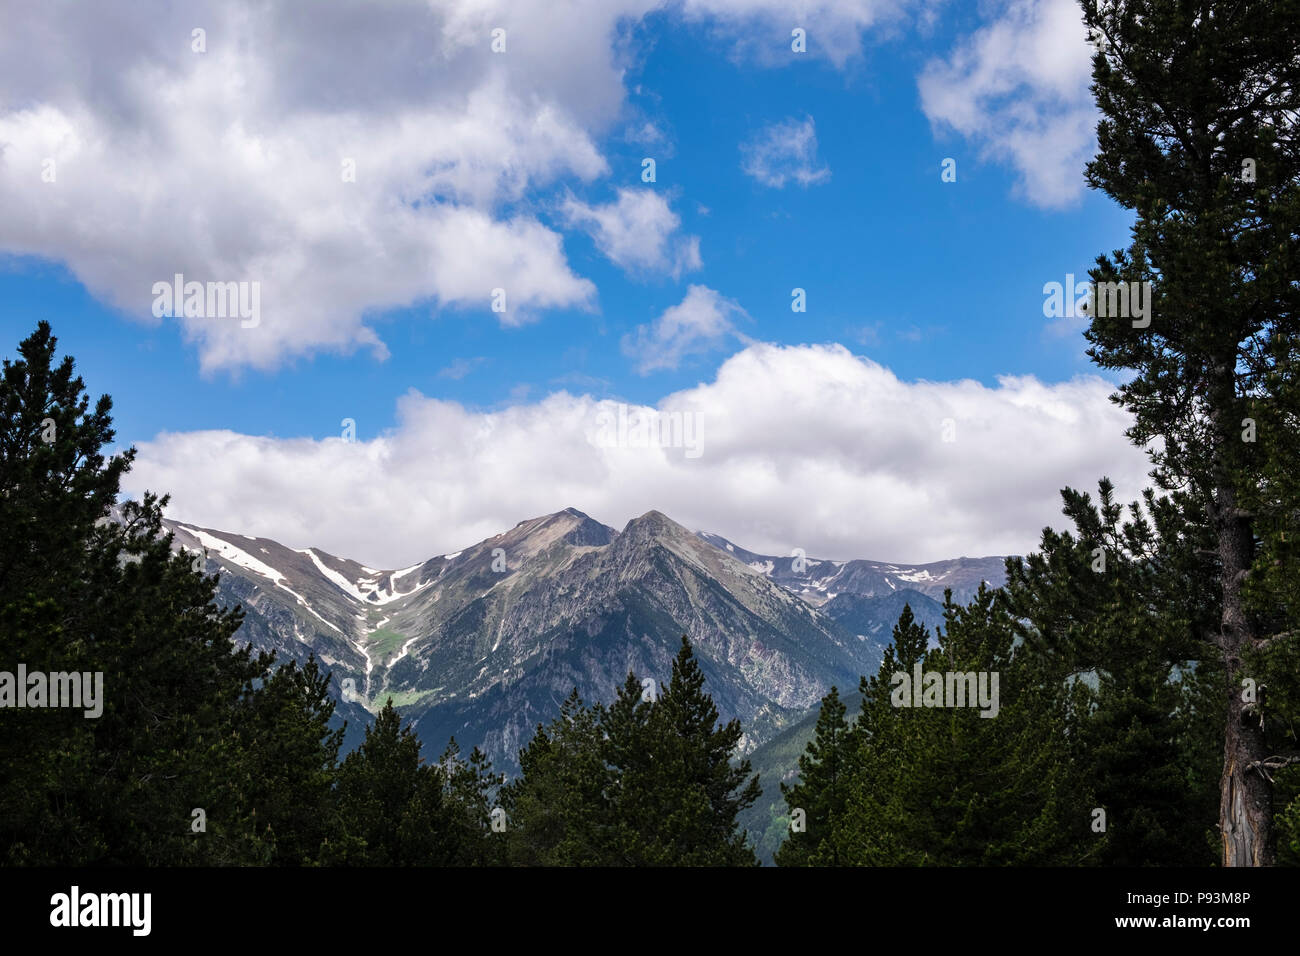 Mountain ridge with snow patches seen from the GR11 near Setcases in the Catalonian Pyrenees, Spain - Stock Image